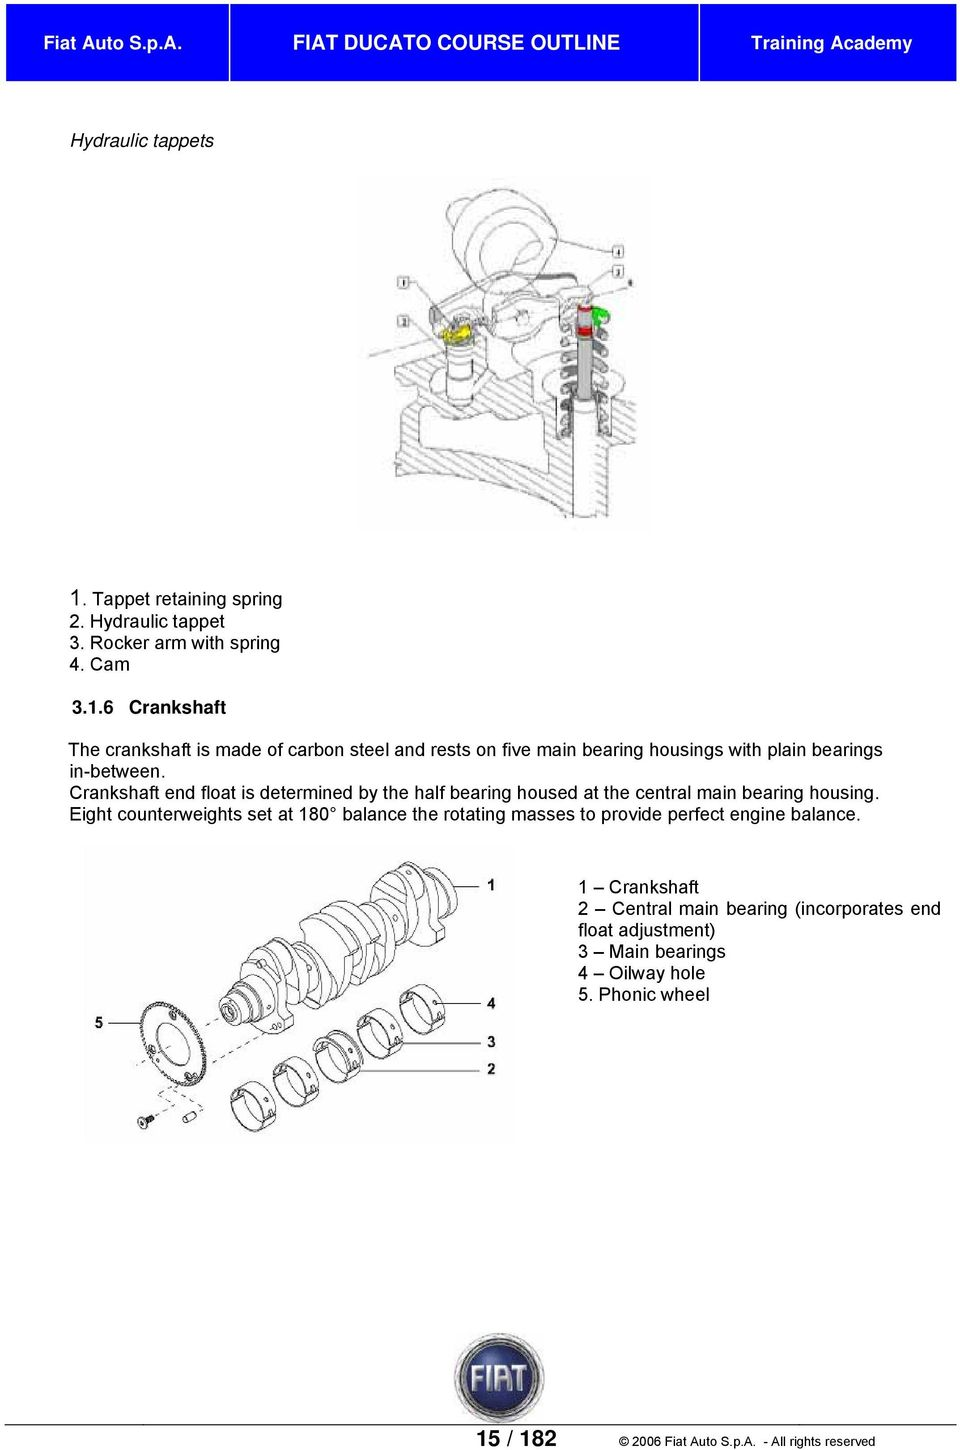 Fiat Ducato Course Outline Second Phase Pdf Miata Engine Plastic Skirt Diagram Eight Counterweights Set At 180 Balance The Rotating Masses To Provide Perfect